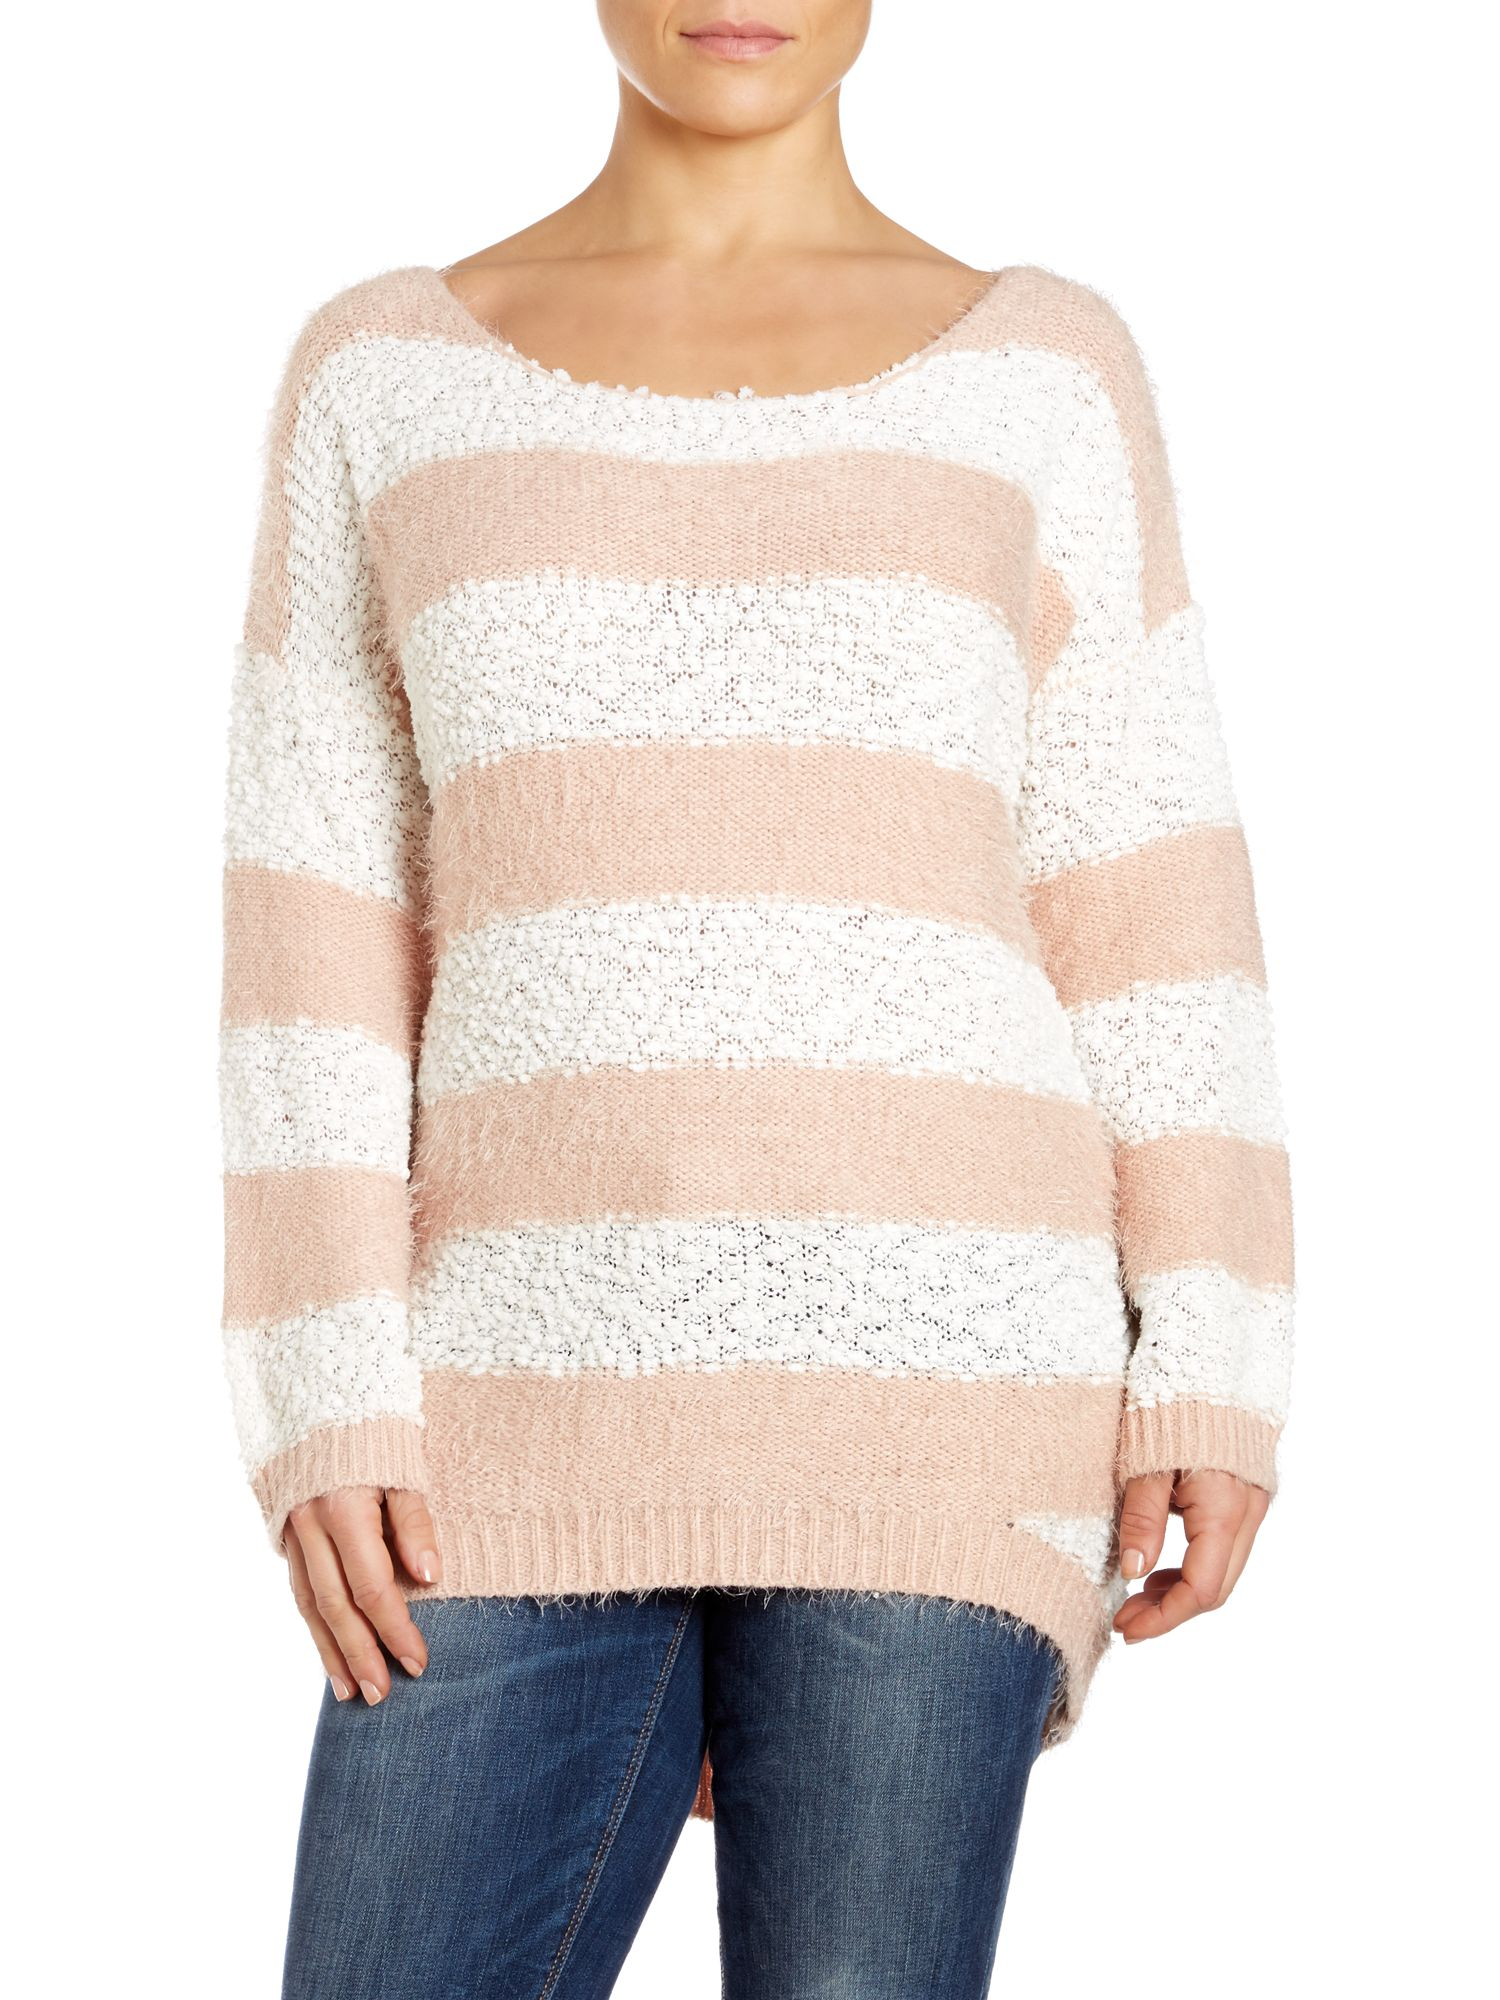 Eyelash and bobble knit jumper